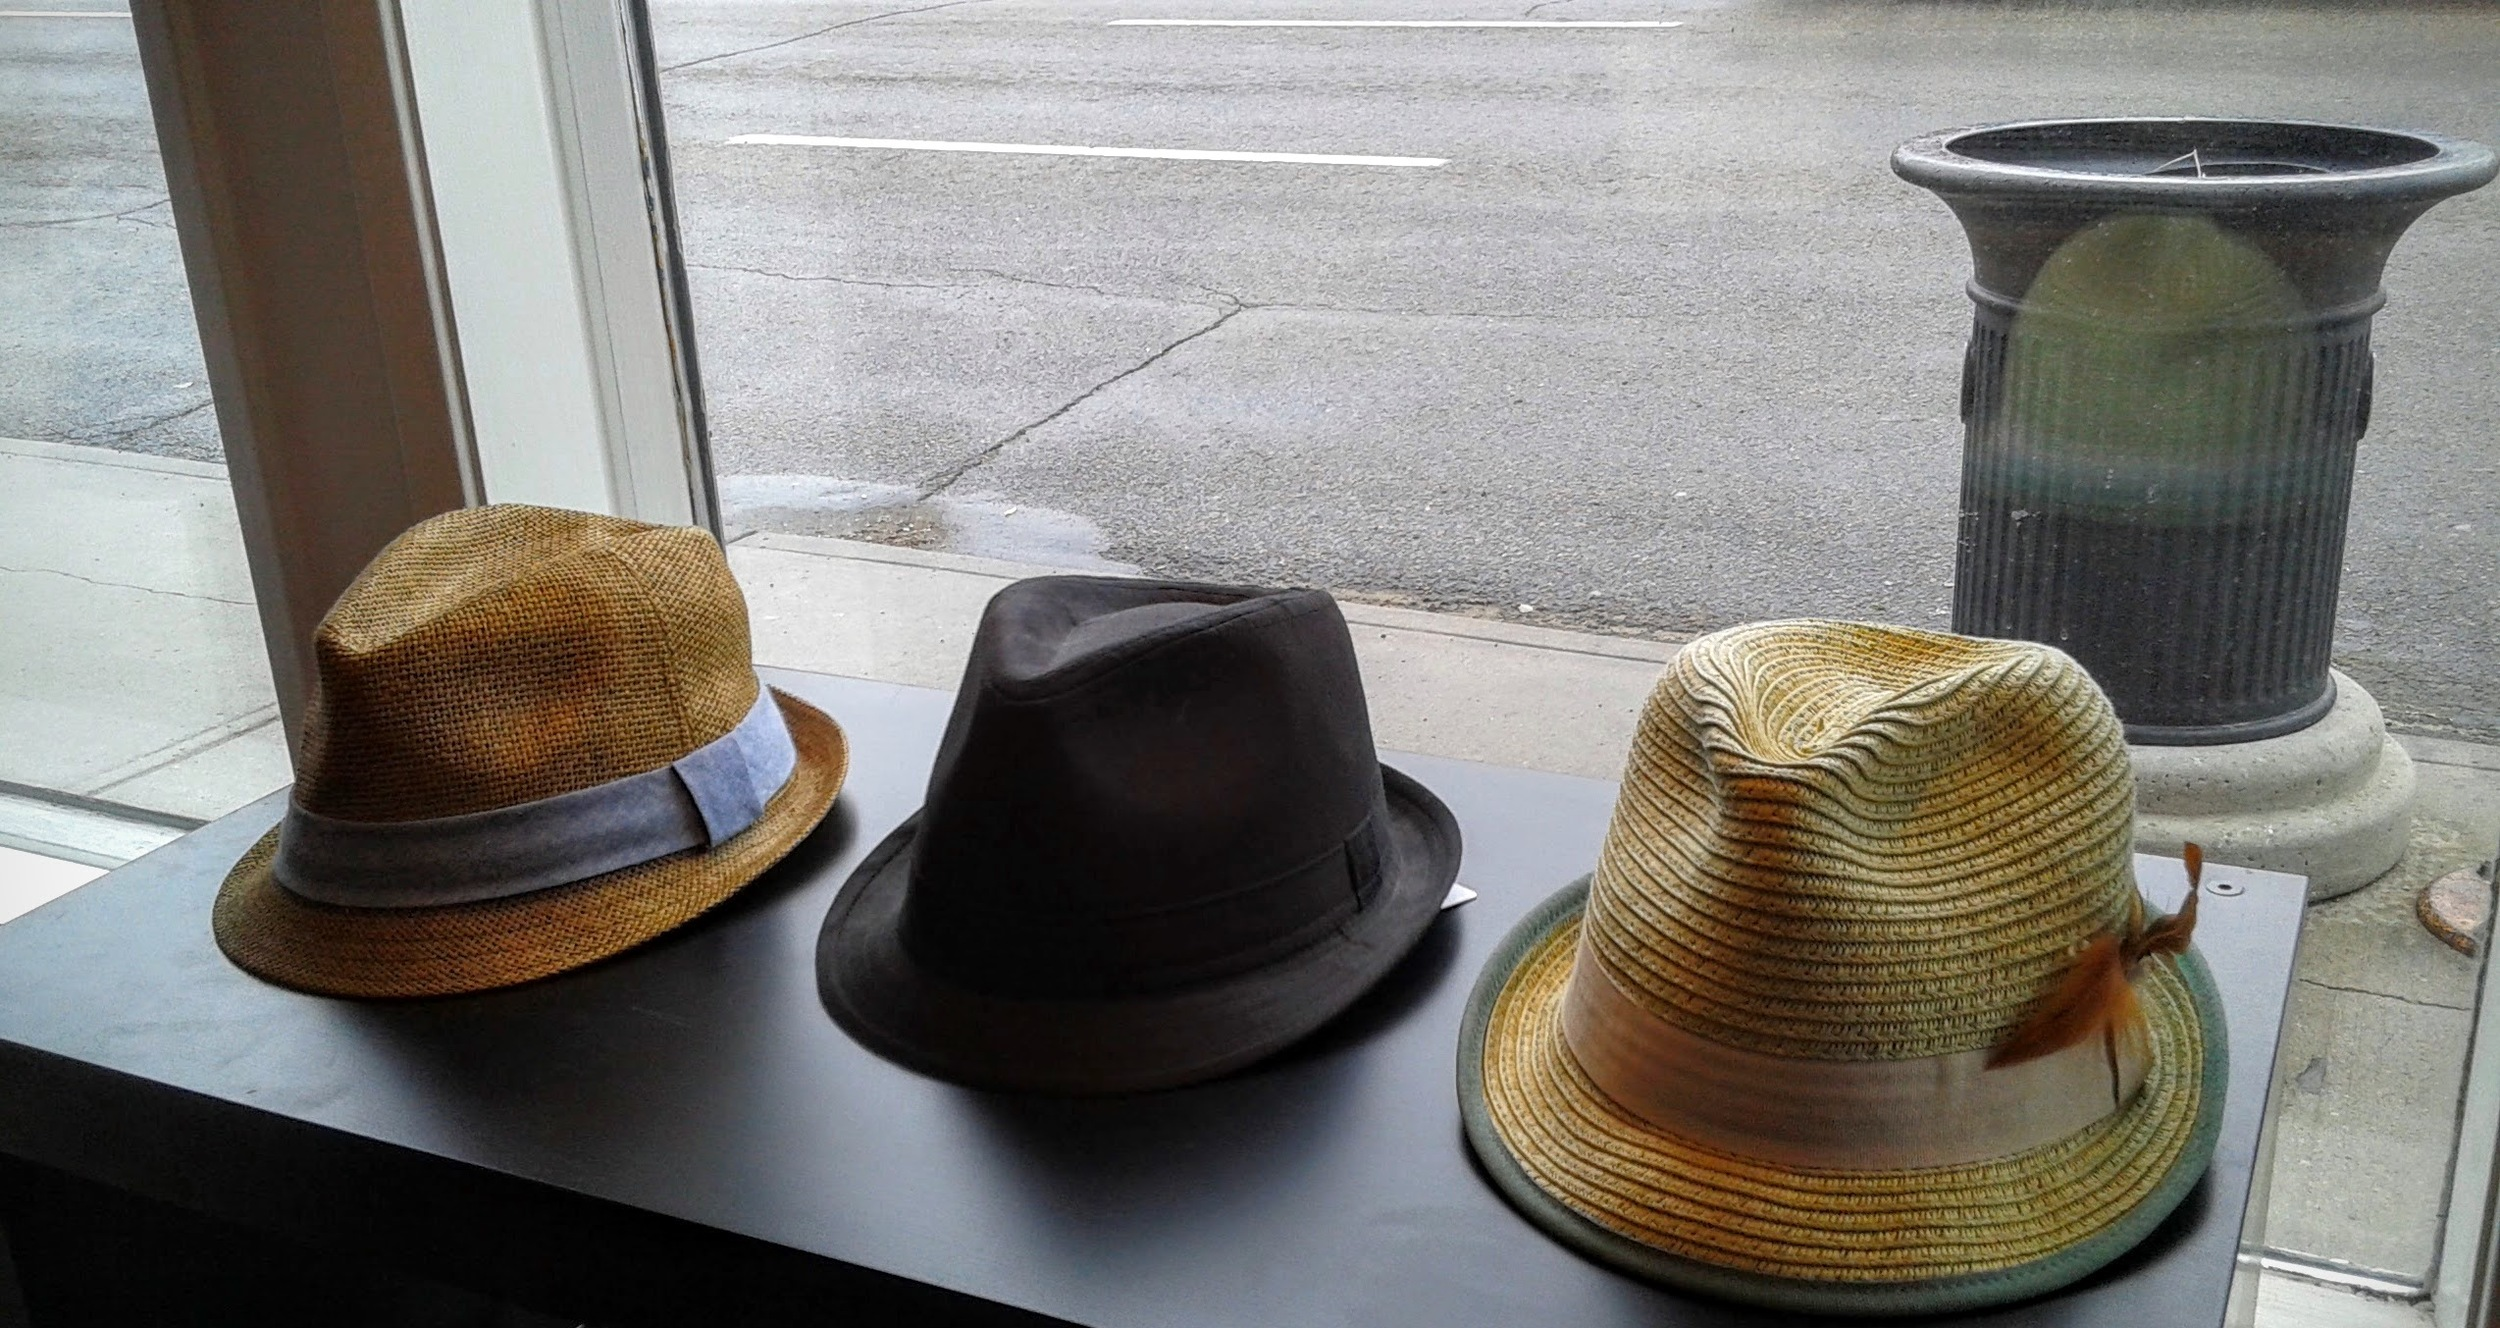 Hats left to right: $18, $8, $18